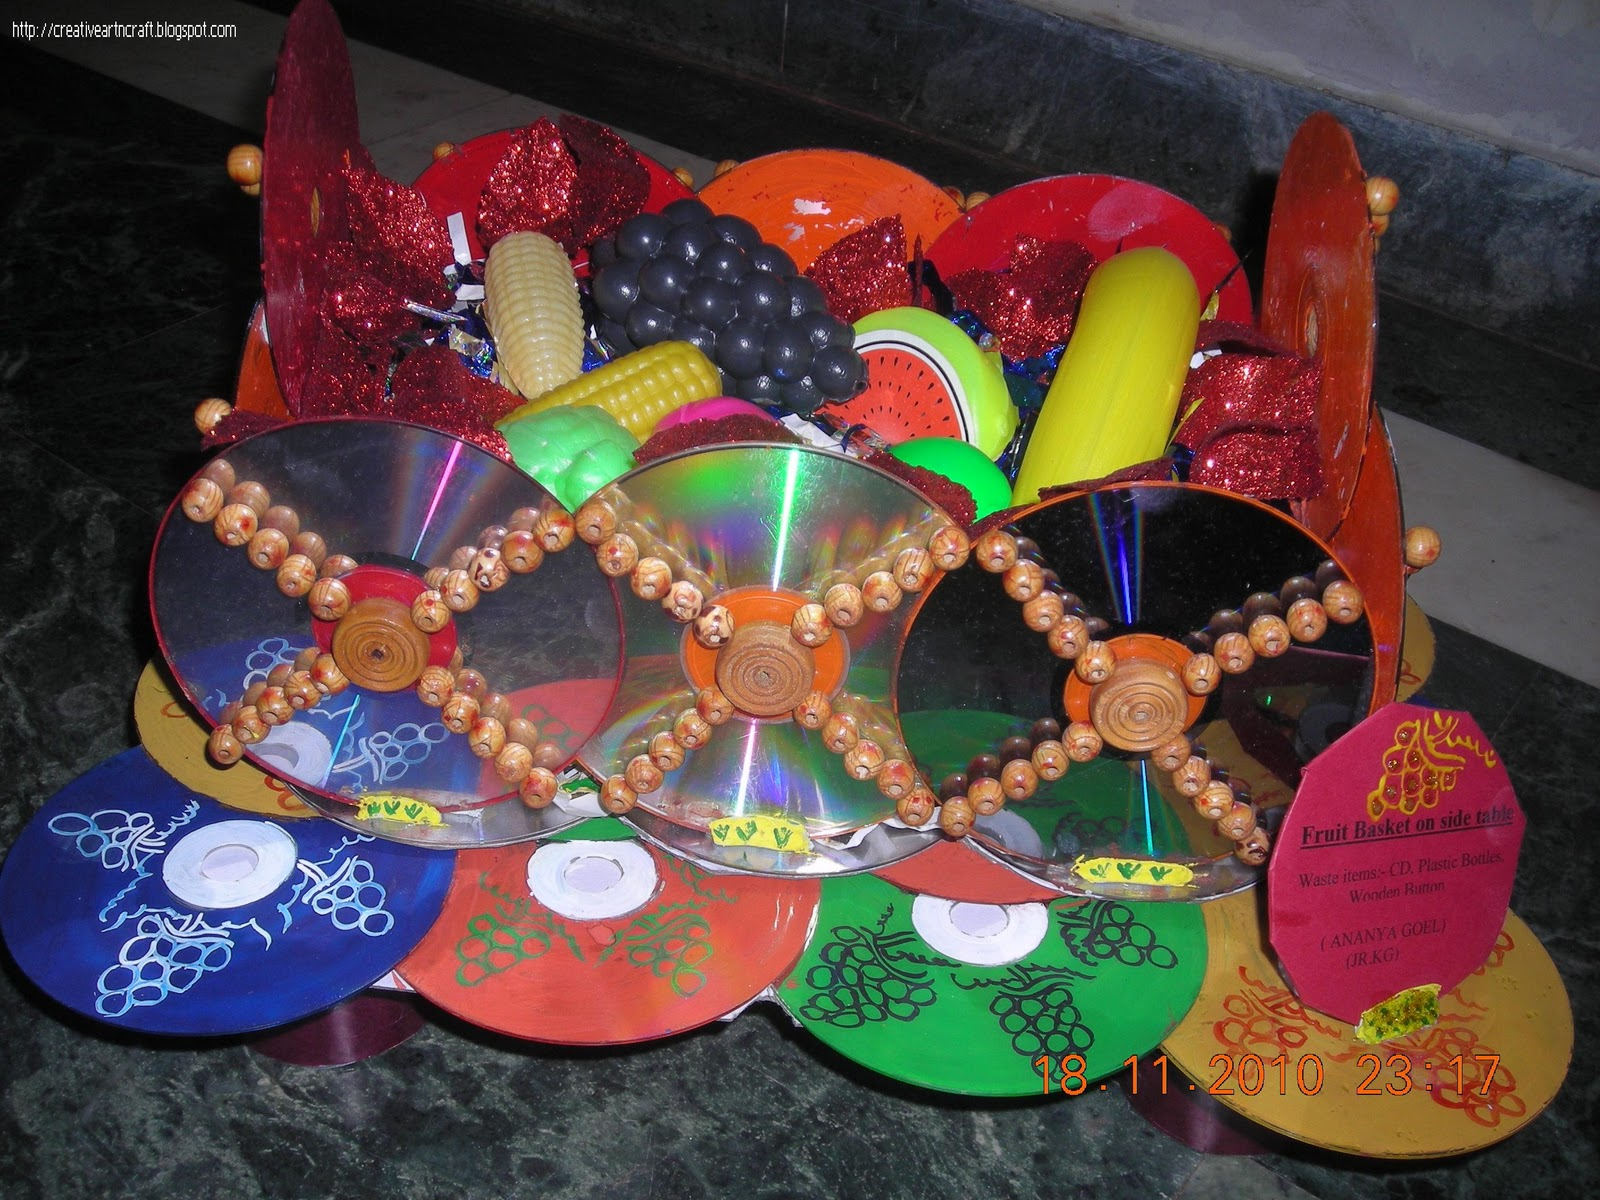 Anu 39 s art and crafts best out of waste fruit basket with for Things made out of waste